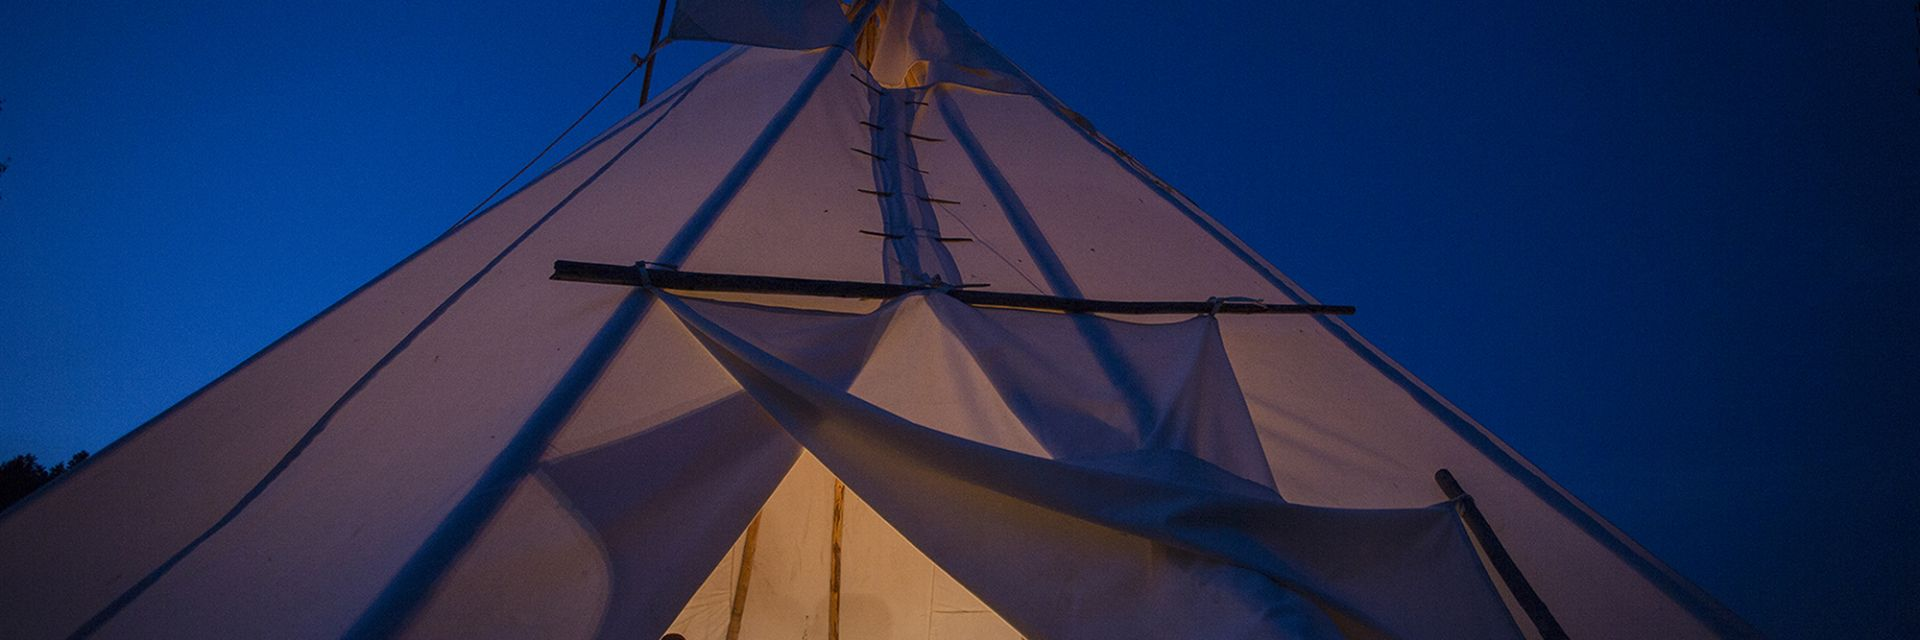 A view of the inside of a Teepee from the opening, revealing people inside.